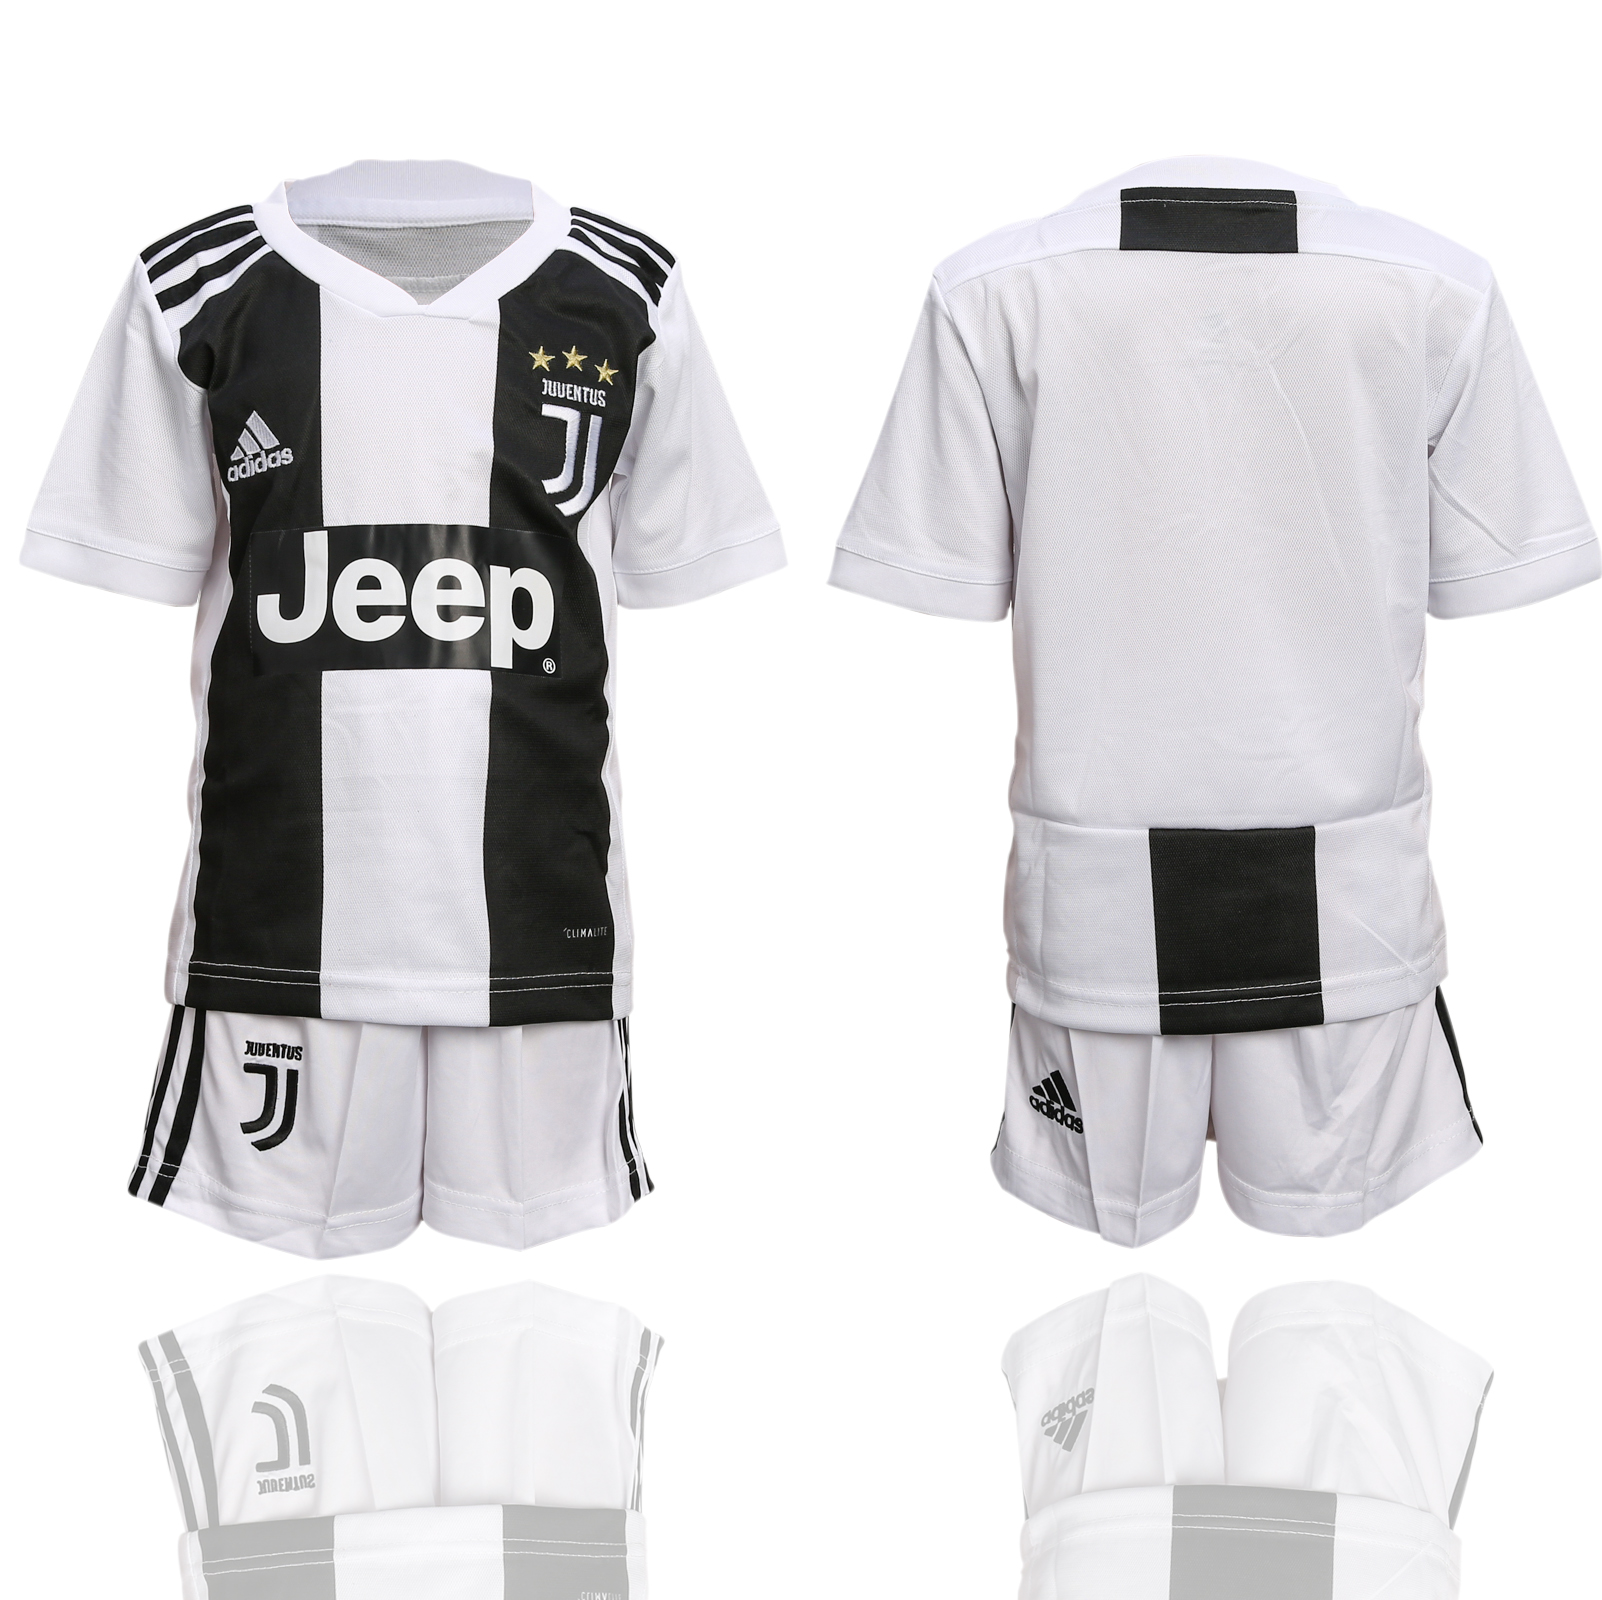 2018-2019 club Juventus home youth soccer jerseys